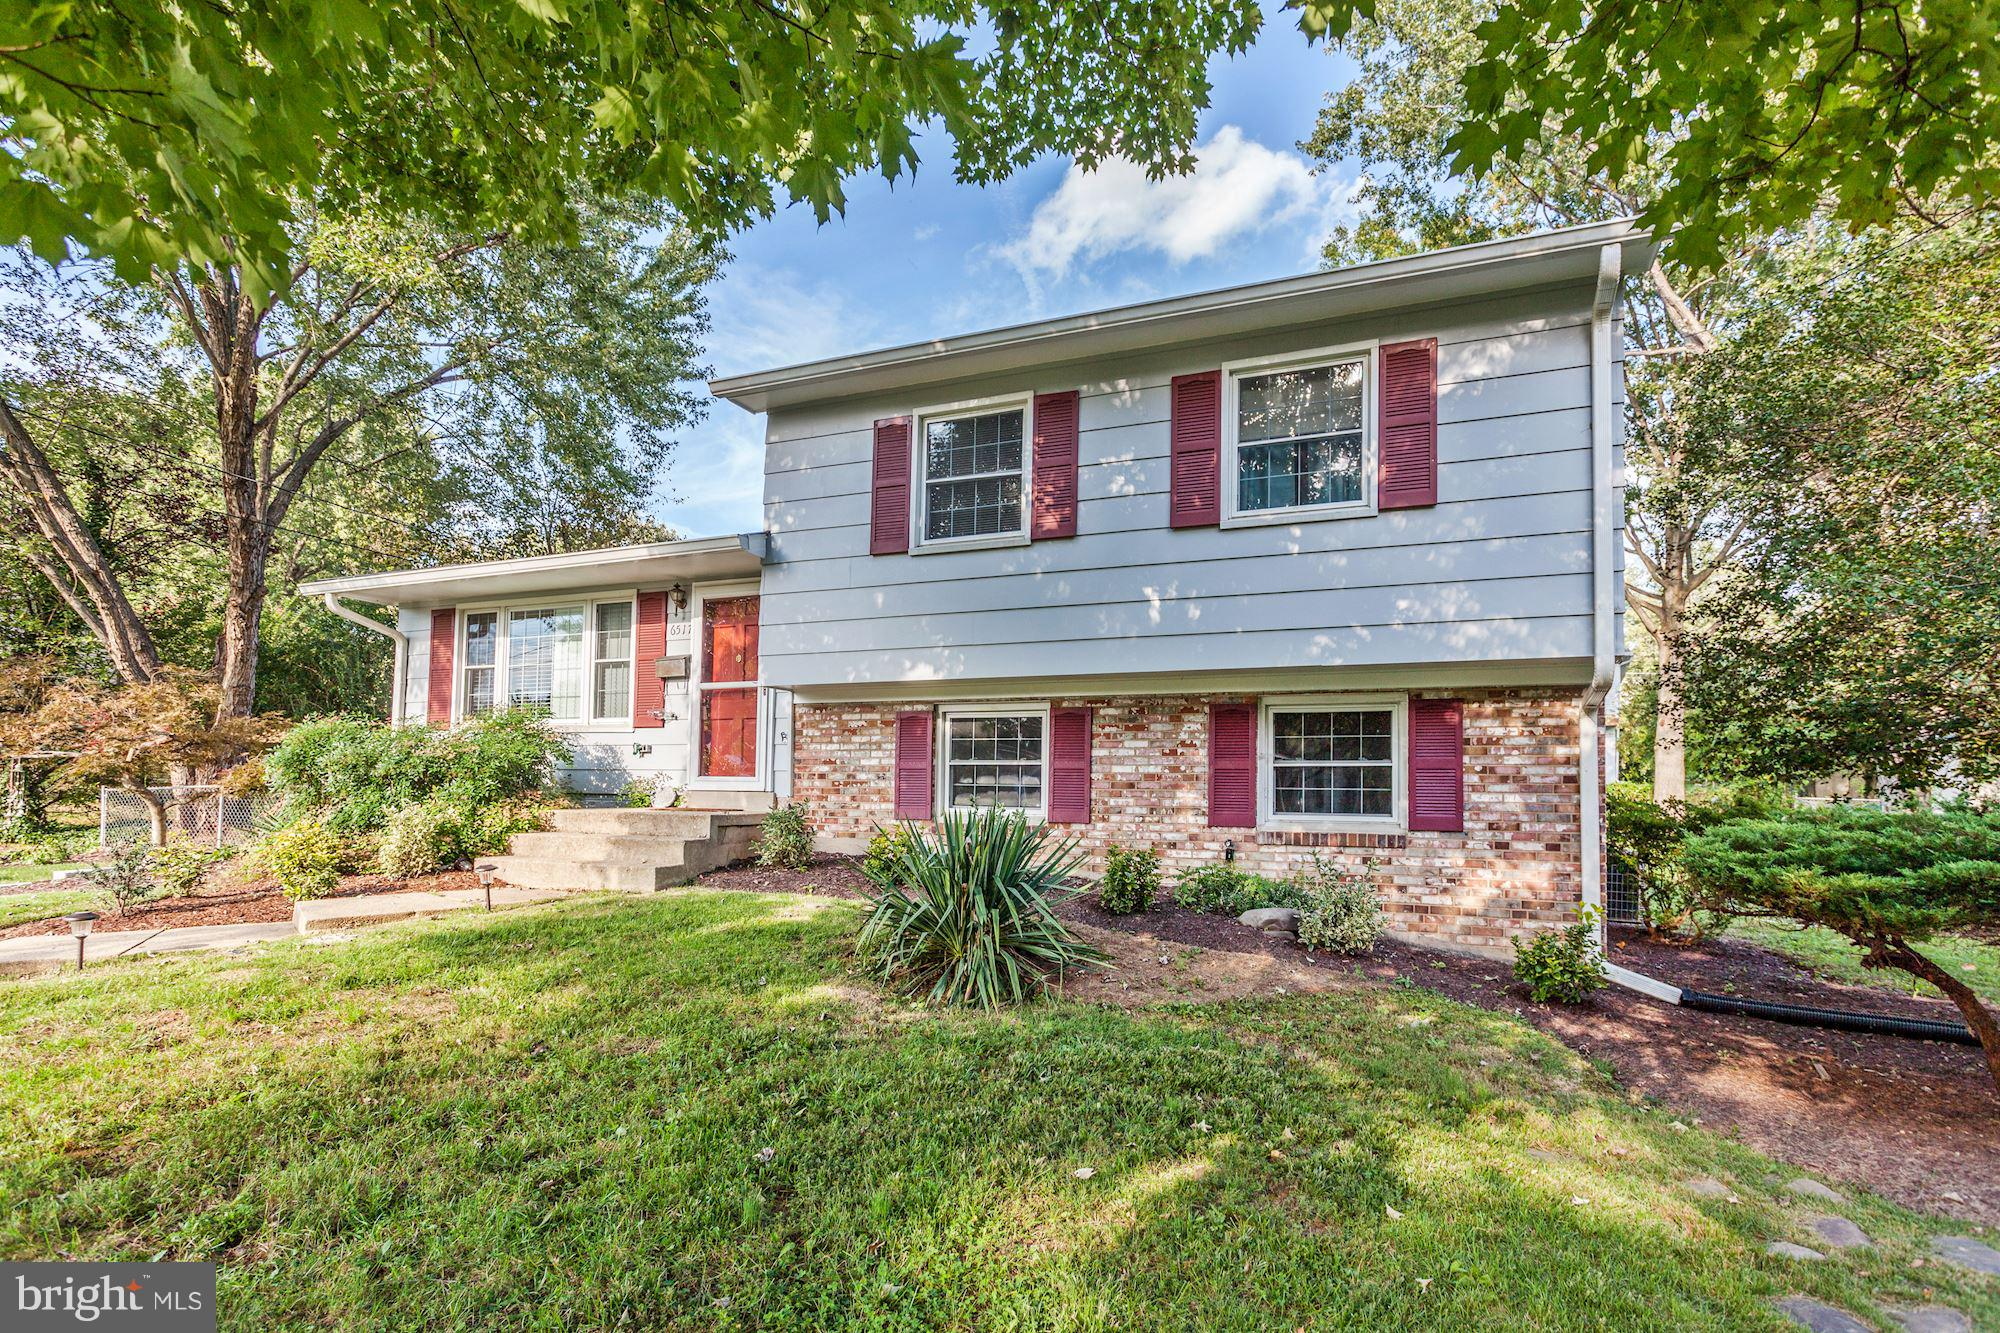 Three levels, 3 BRs, 2 BA, wood flooring, large lot w/ mature trees & generous backyard. 2018 updates incl: baths, most kitchen appls & LL carpet. Other updates incl: roofing, gutters, HWH. There's a 360 sf deck, a patio & lg shed/workshop w/electricity. Location is convenient to Lee District Park, 3 Metros & Ft Belvoir. Also close to shopping/dining, commuter routes. Haystack Rd for the Win!